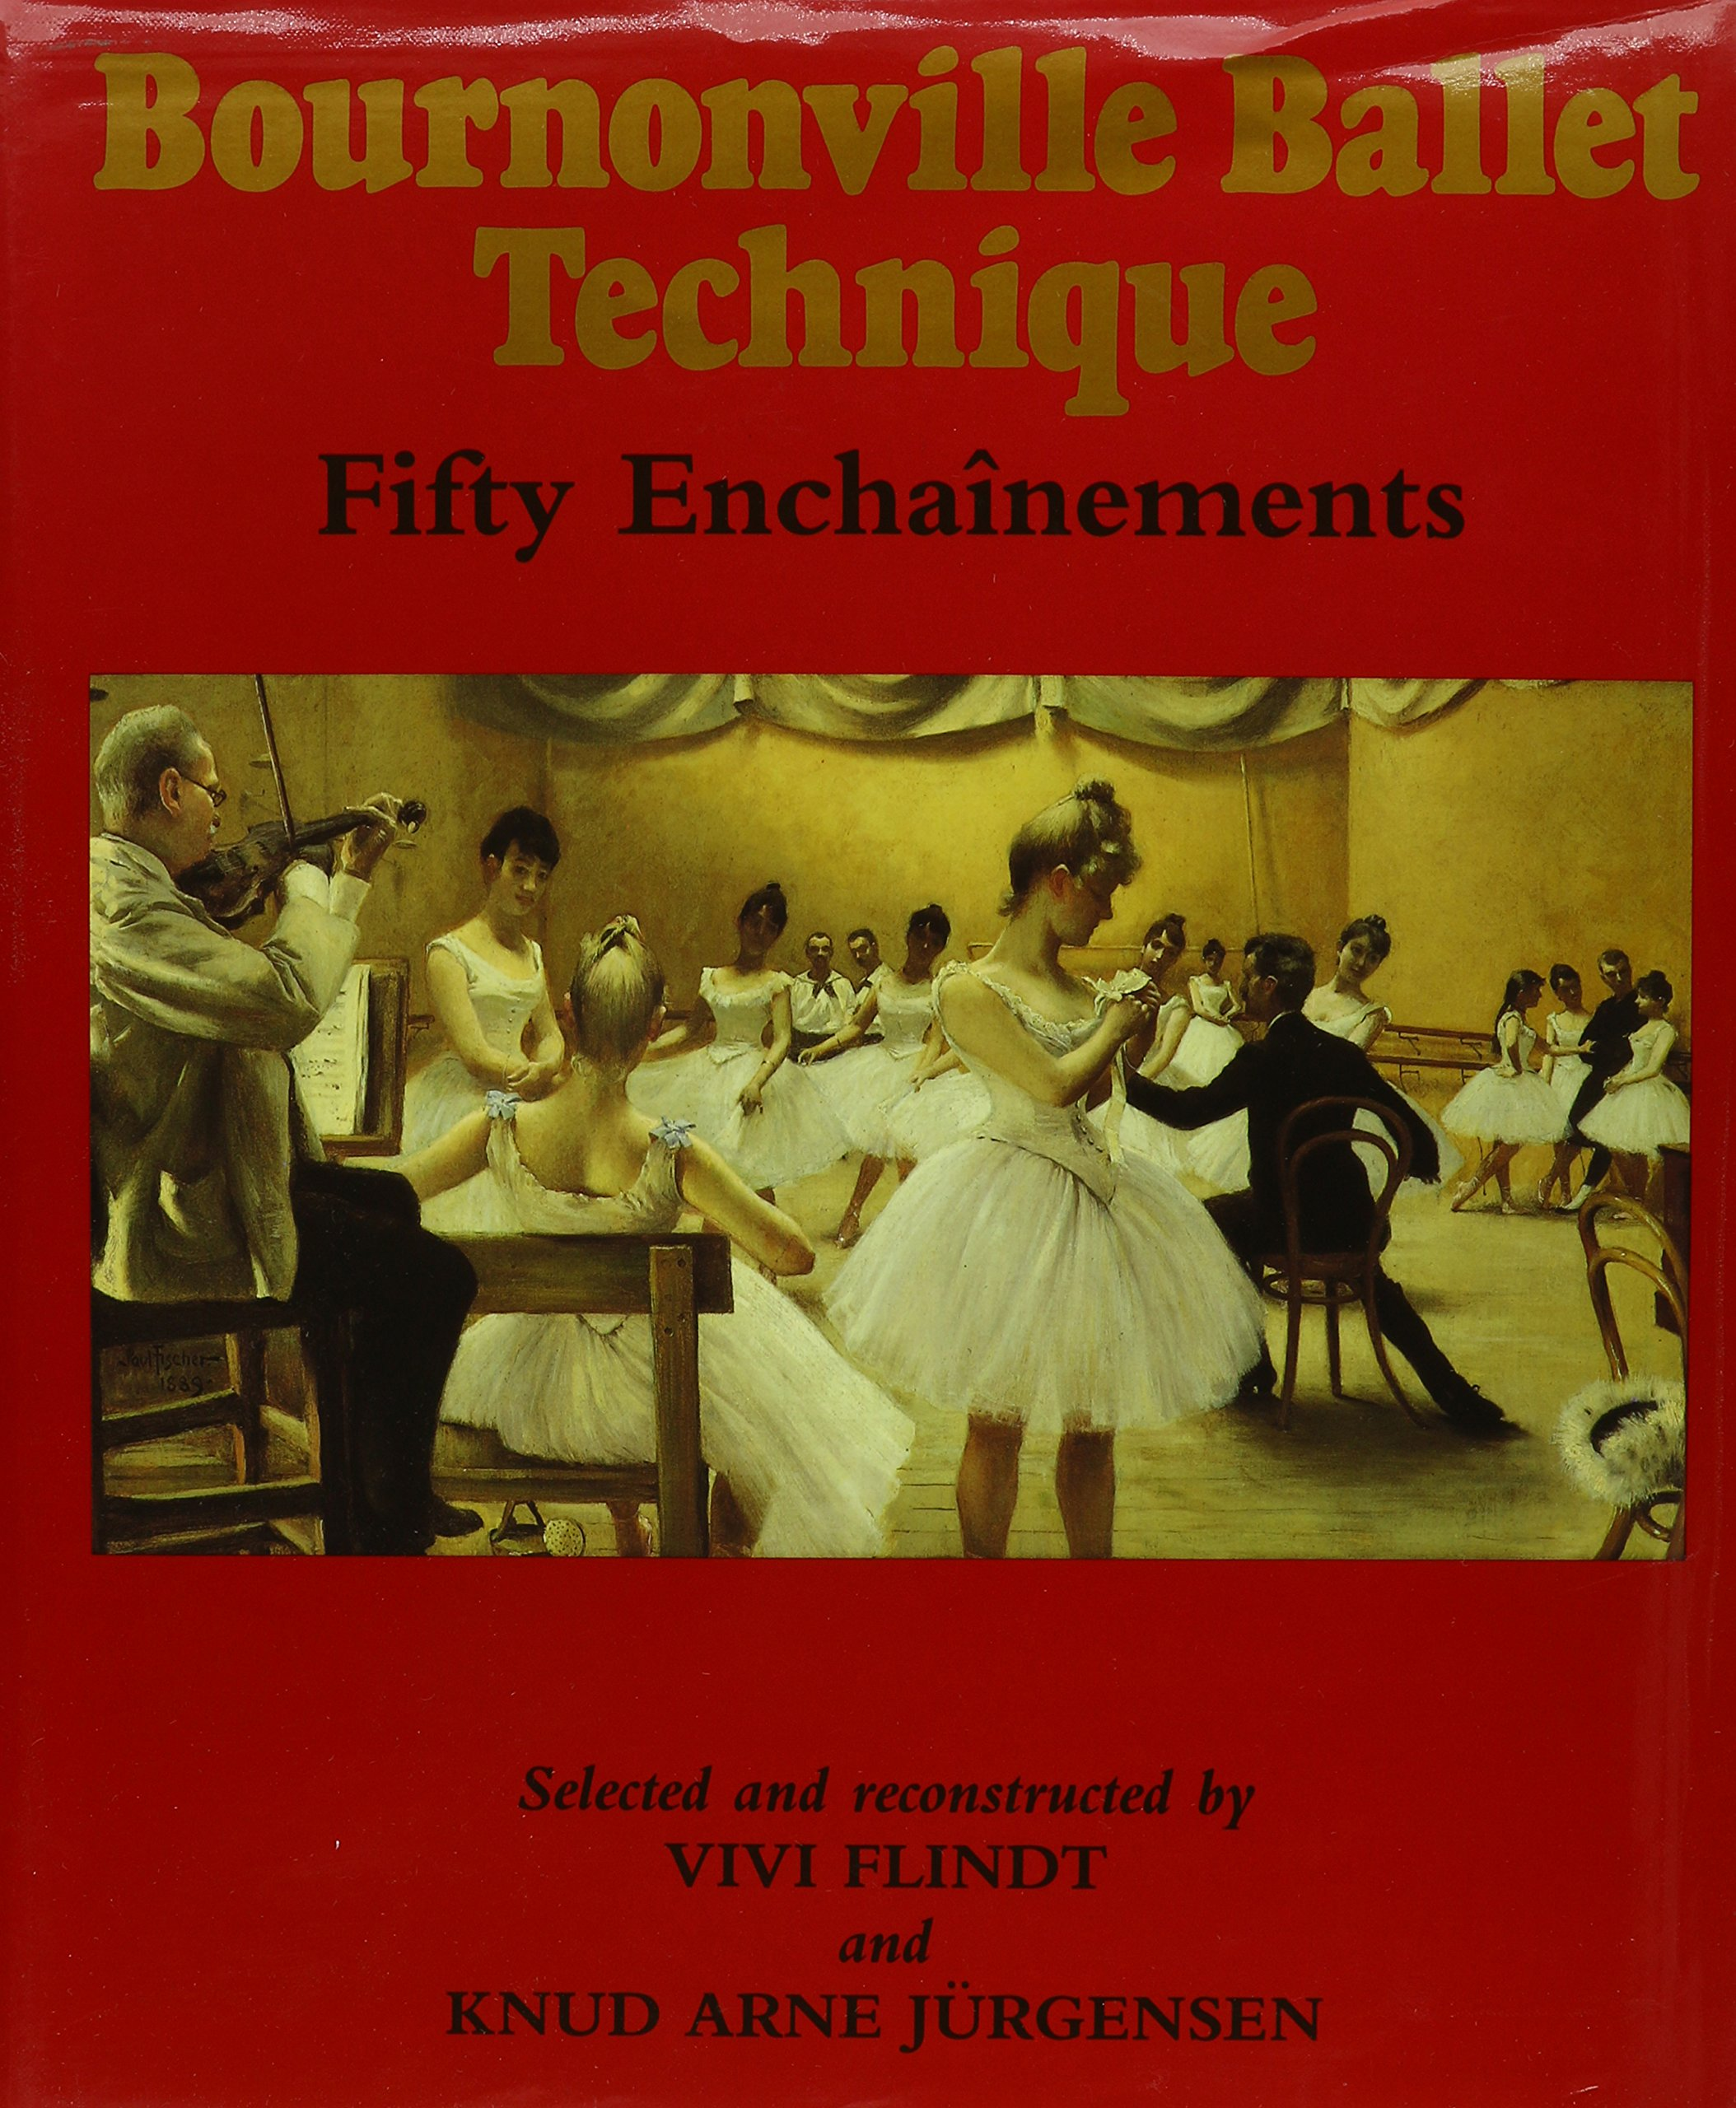 Bournonville Ballet Technique: Fifty Enchainements